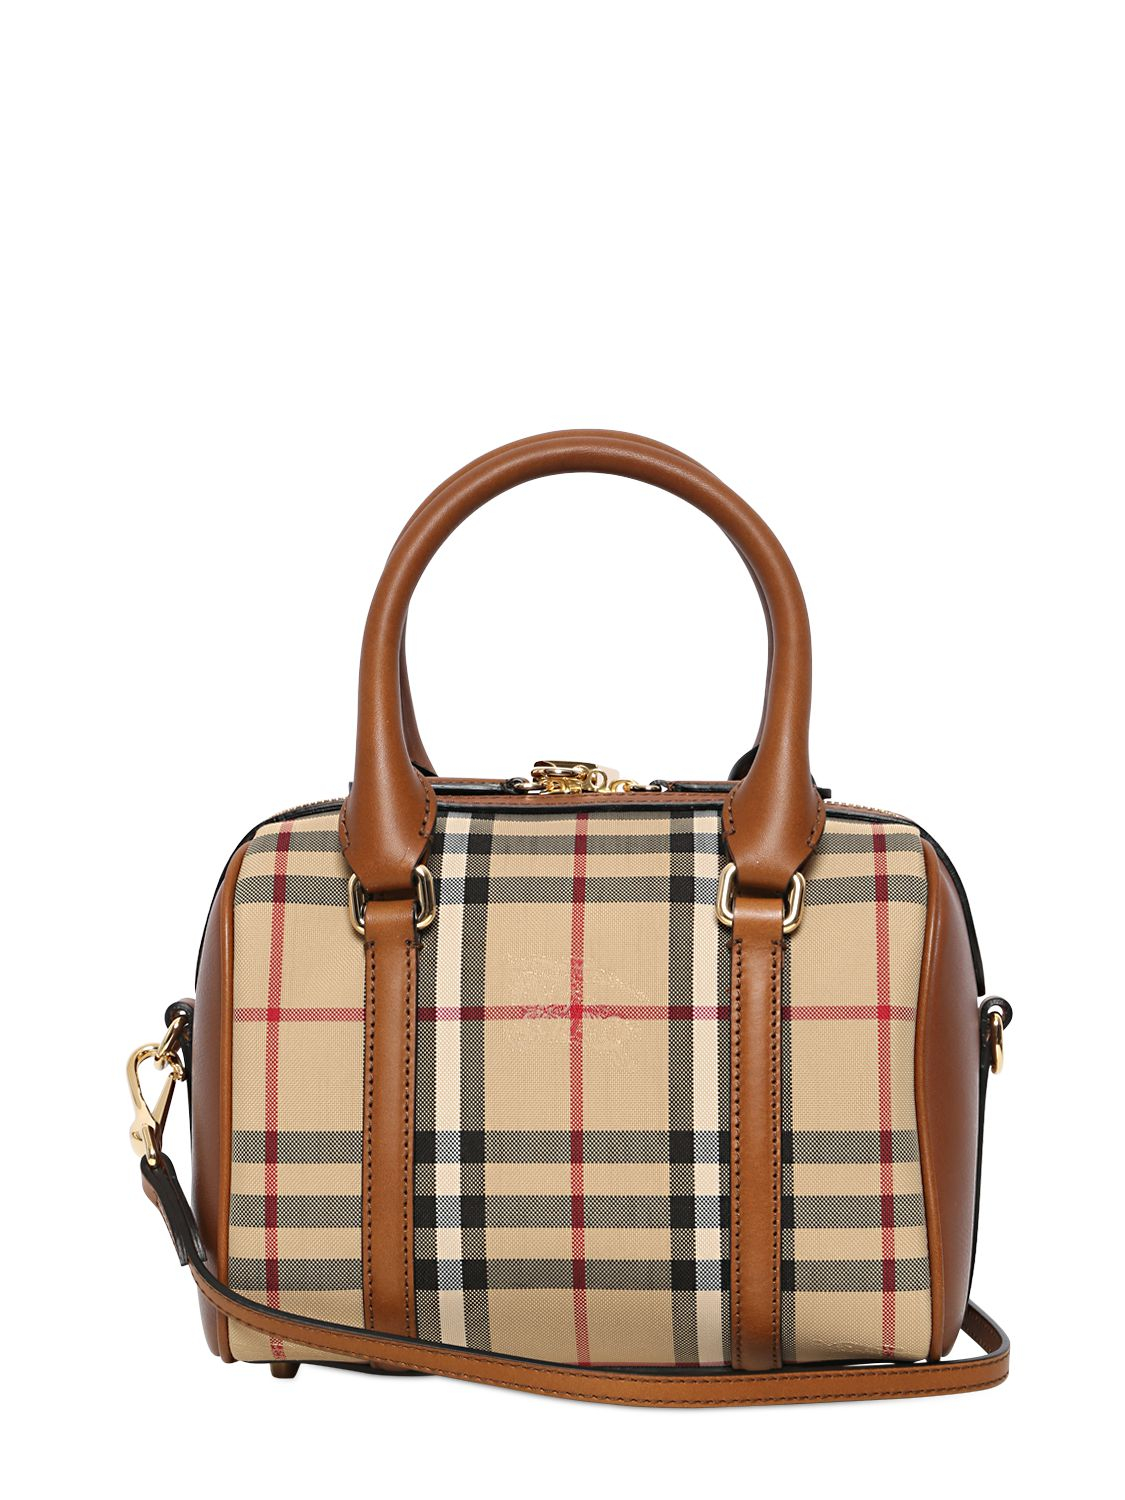 48e903a57ffd Lyst - Burberry Small Alchester Bridle House Check Bag in Brown